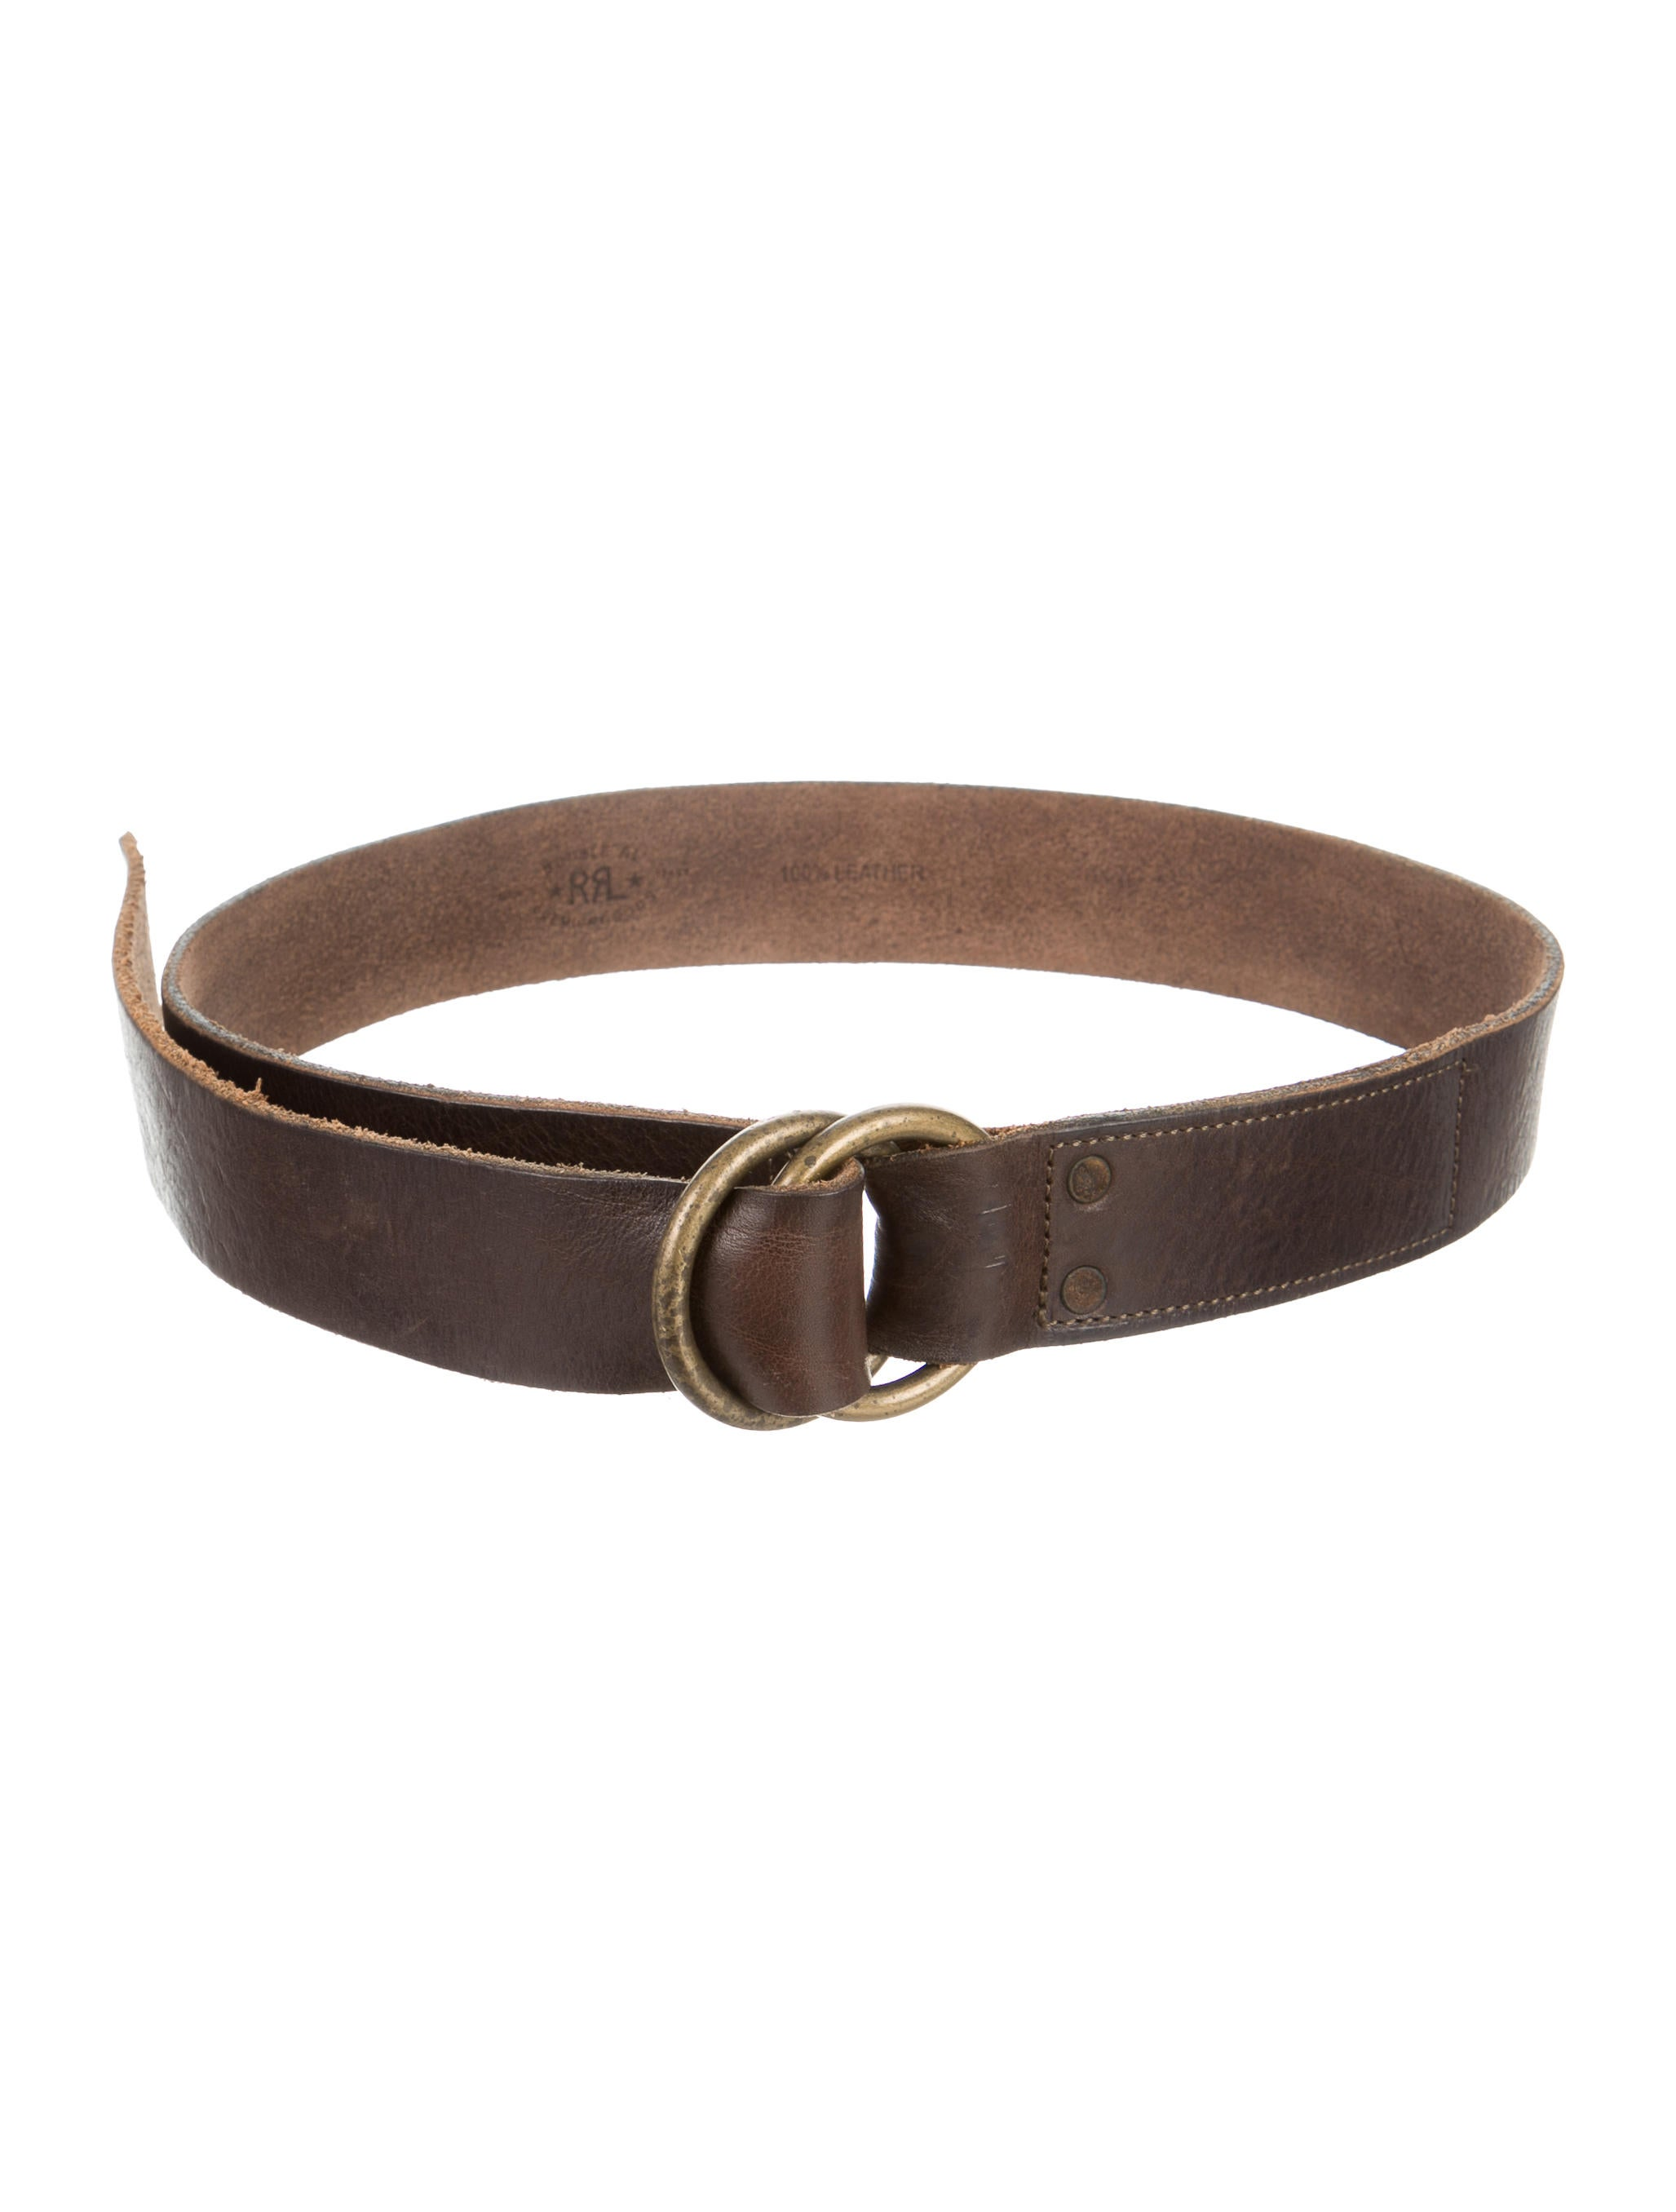 rrl co distressed leather belt accessories